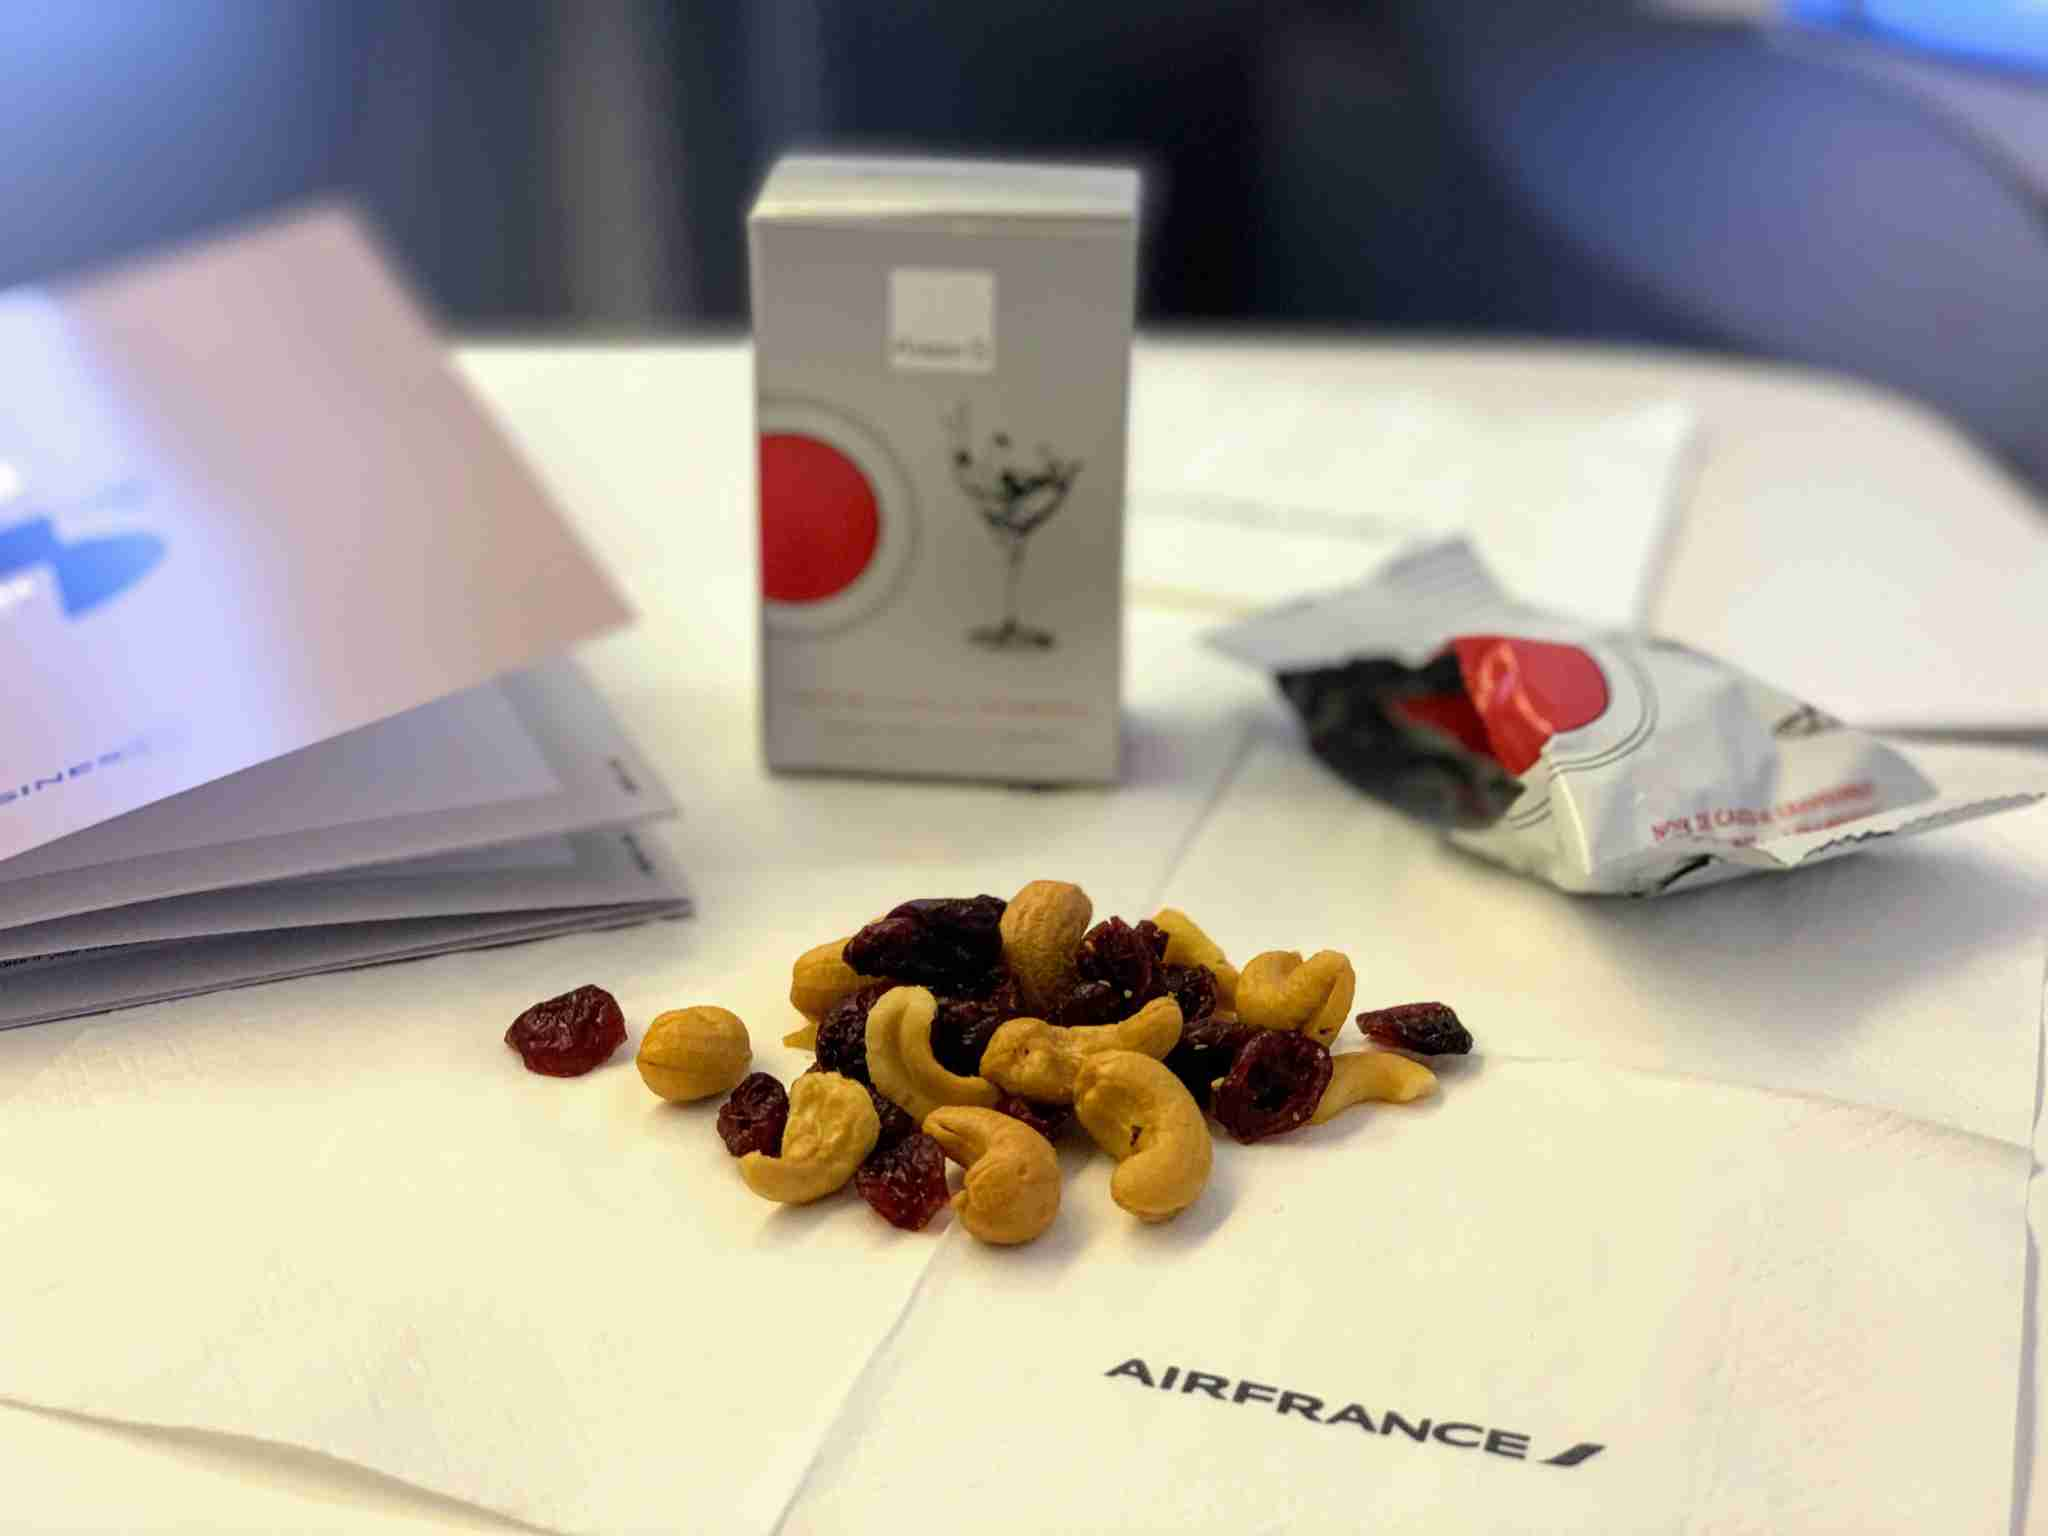 Air France Boeing 777 Business Class nuts